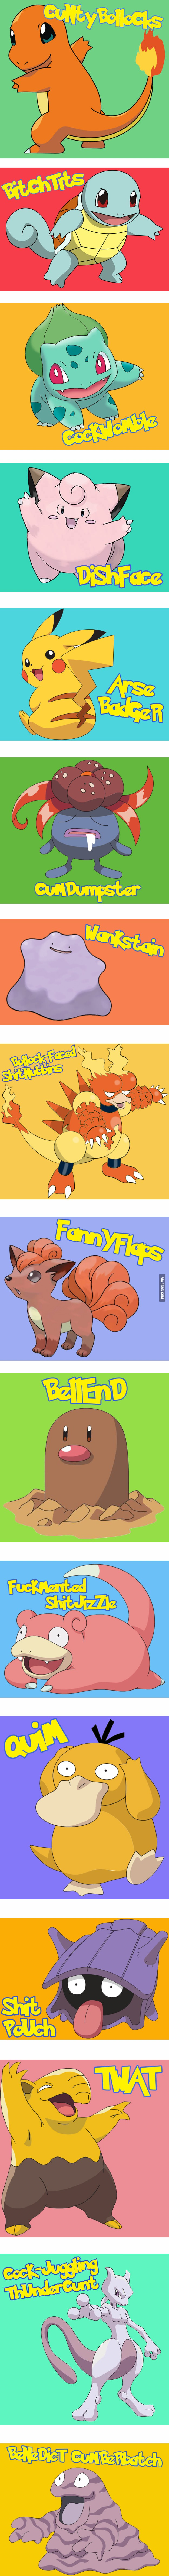 If Pokémon Were Named By British People | Pinterest Humor